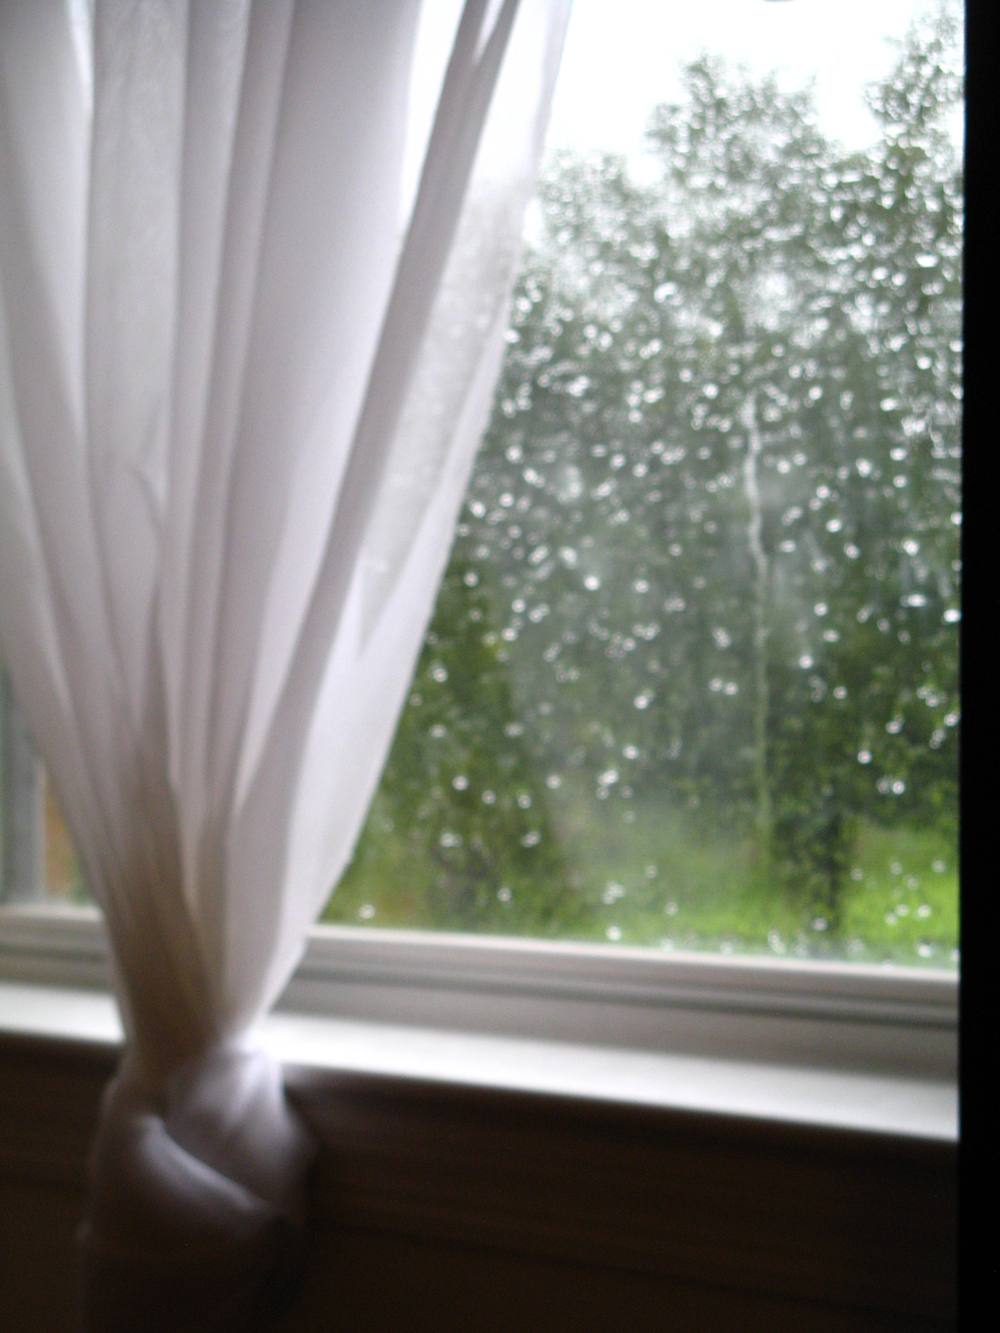 August 2013 - Rain on a window pane - White curtain and greenery